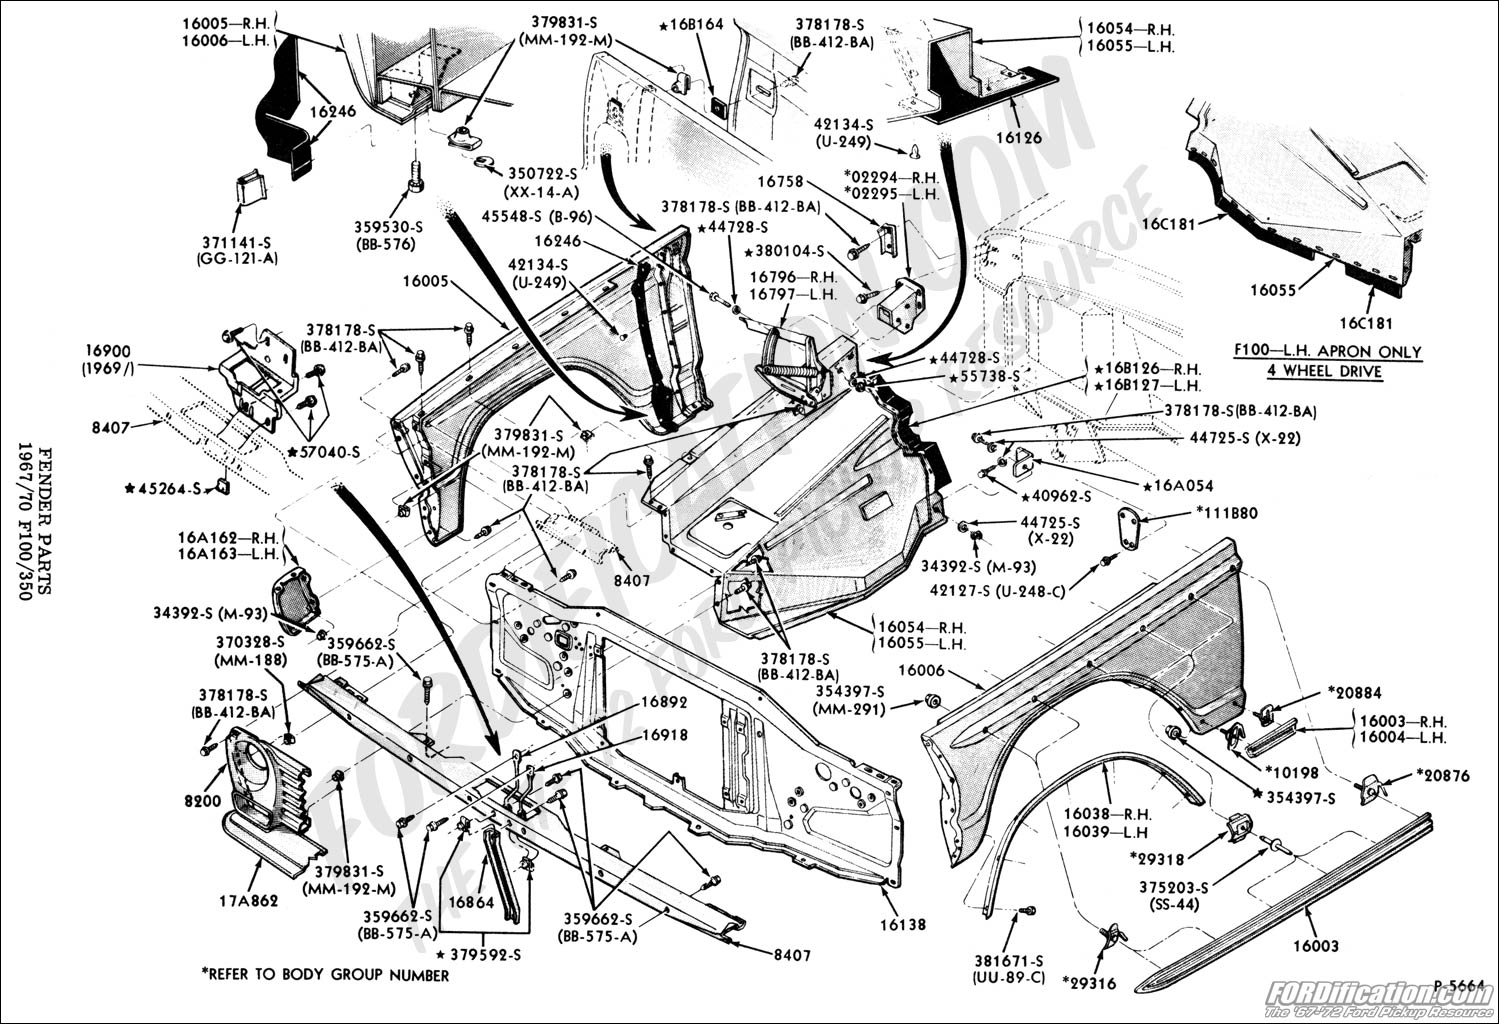 2008 f150 parts diagram wiring diagrams update2008 ford f 150 parts diagram data wiring diagram 2008 escalade parts diagram 2008 f150 parts diagram